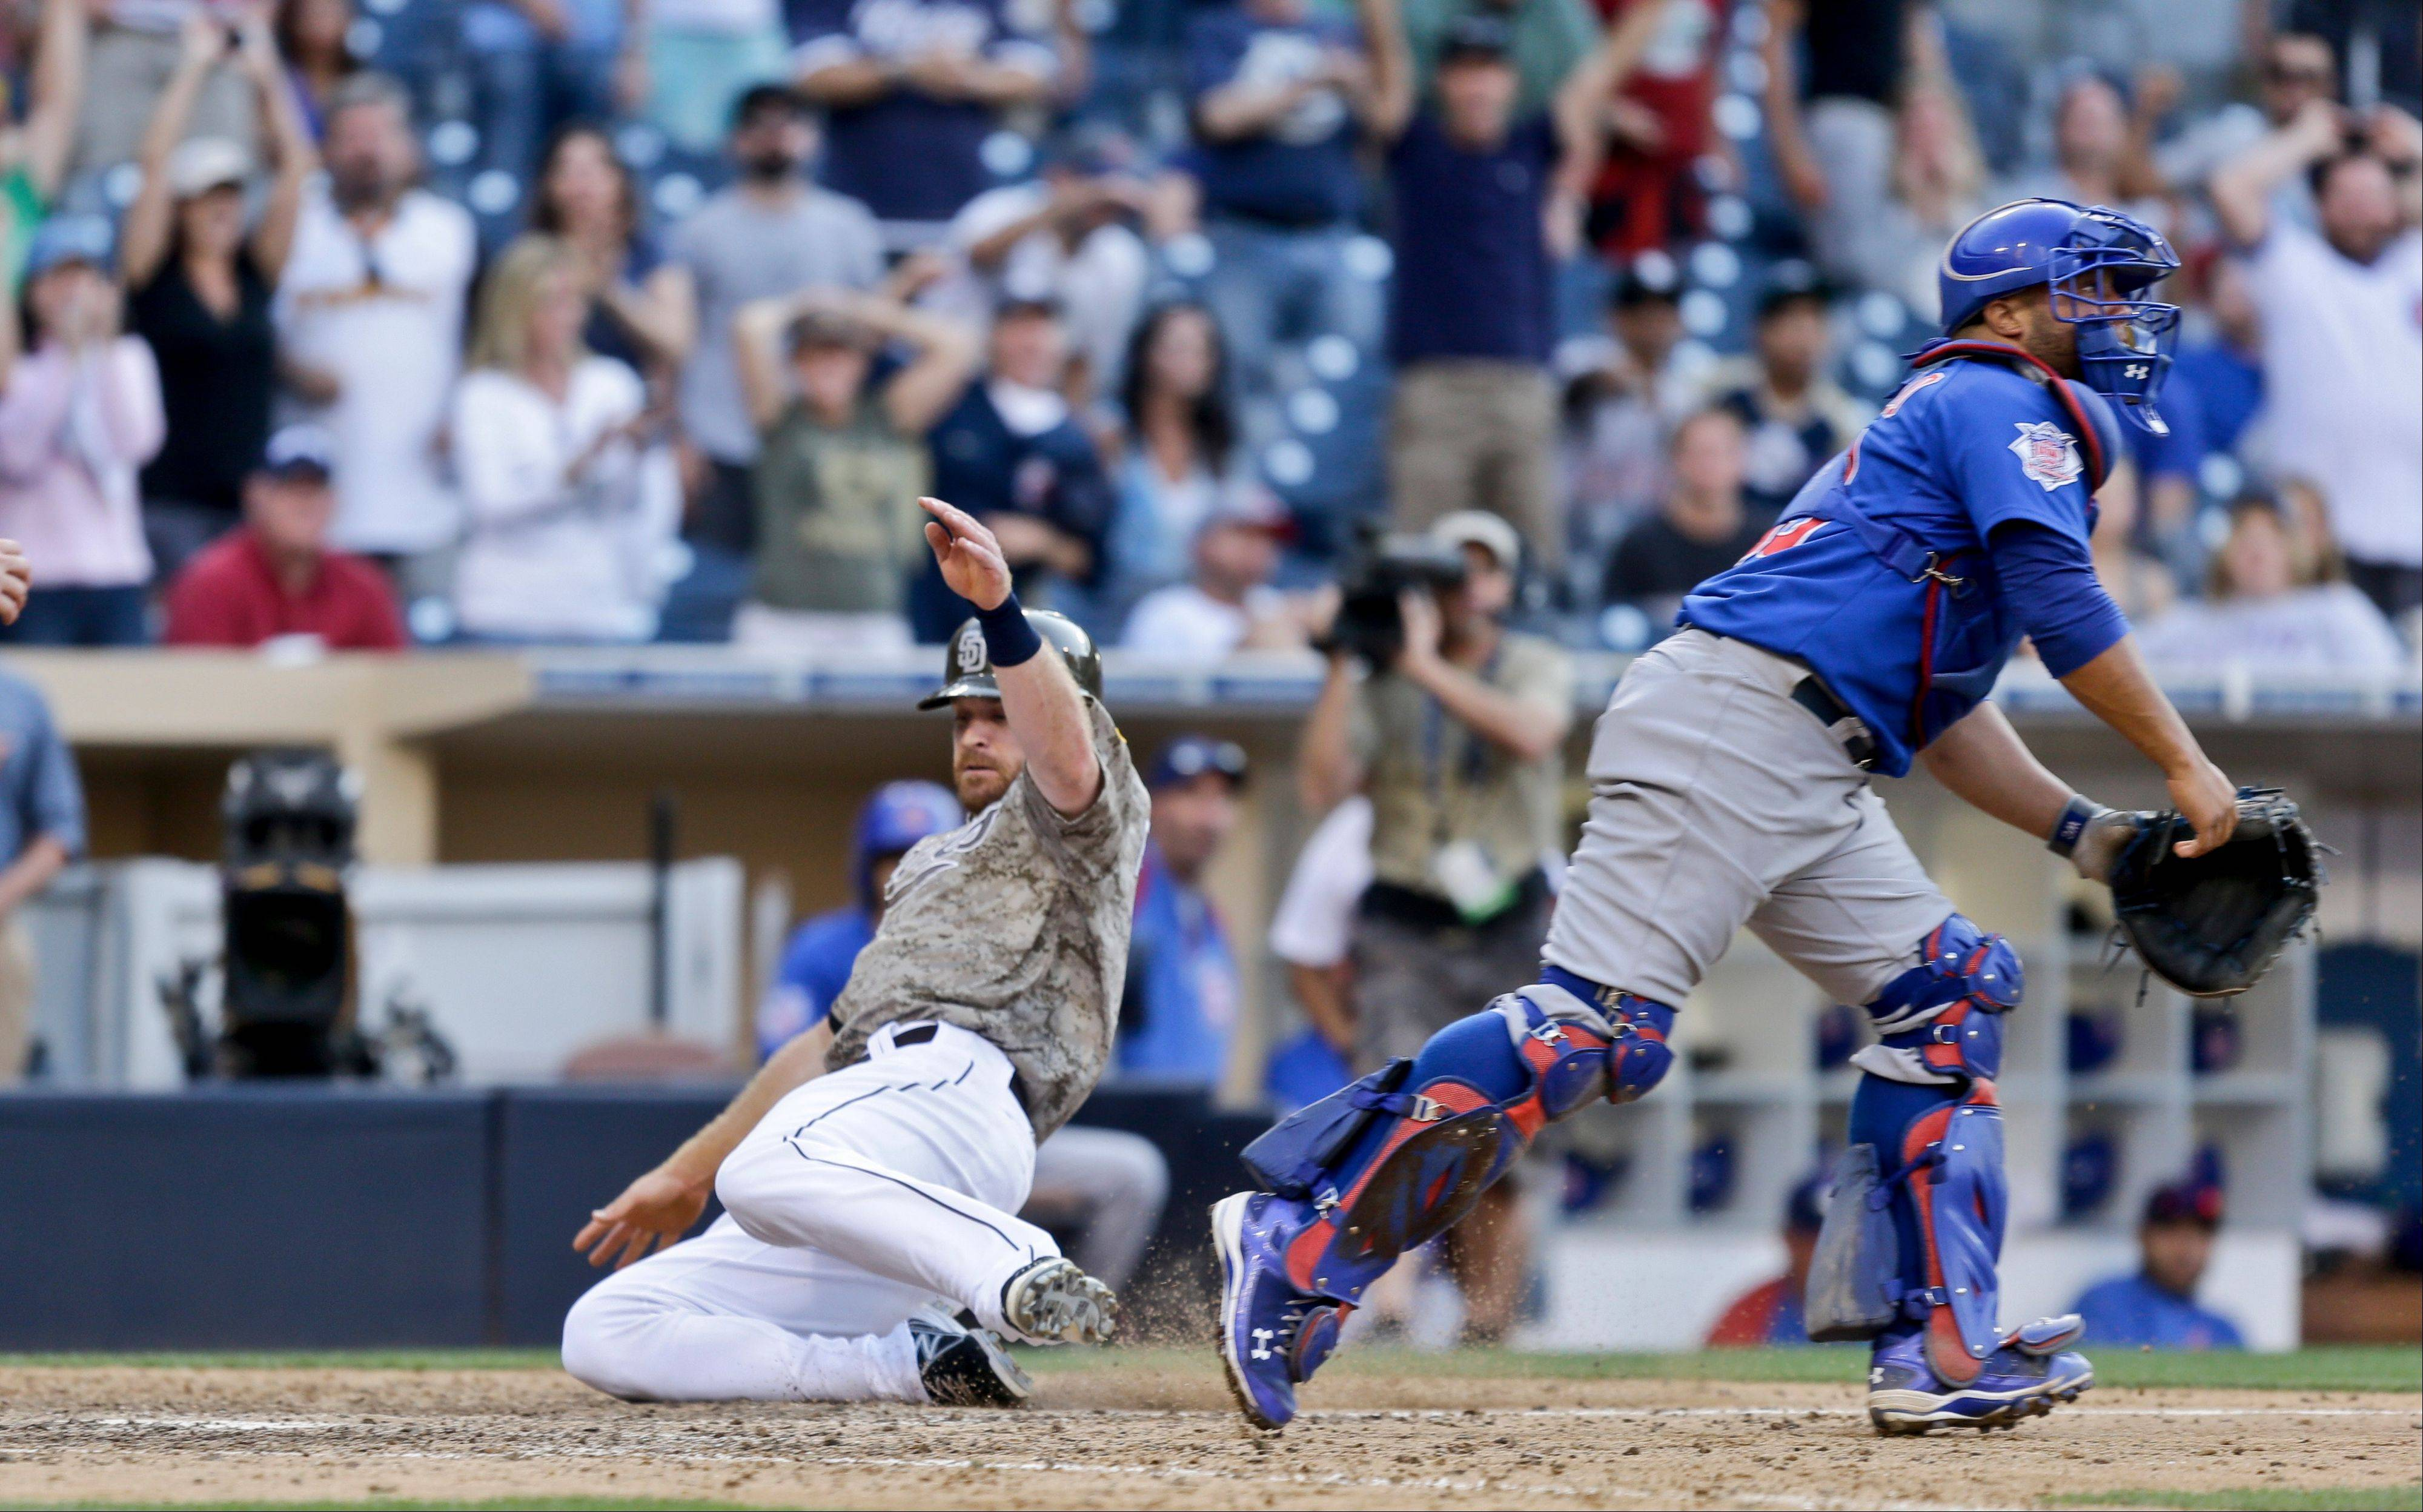 San Diego Padres� Logan Forsythe slides in safely with the game winning run as Chicago Cubs catcher Welington Castillo chases the late throw in the fifteenth inning of a baseball game won 3-2 by the Padres Sunday, Aug. 25, 2013, in San Diego.